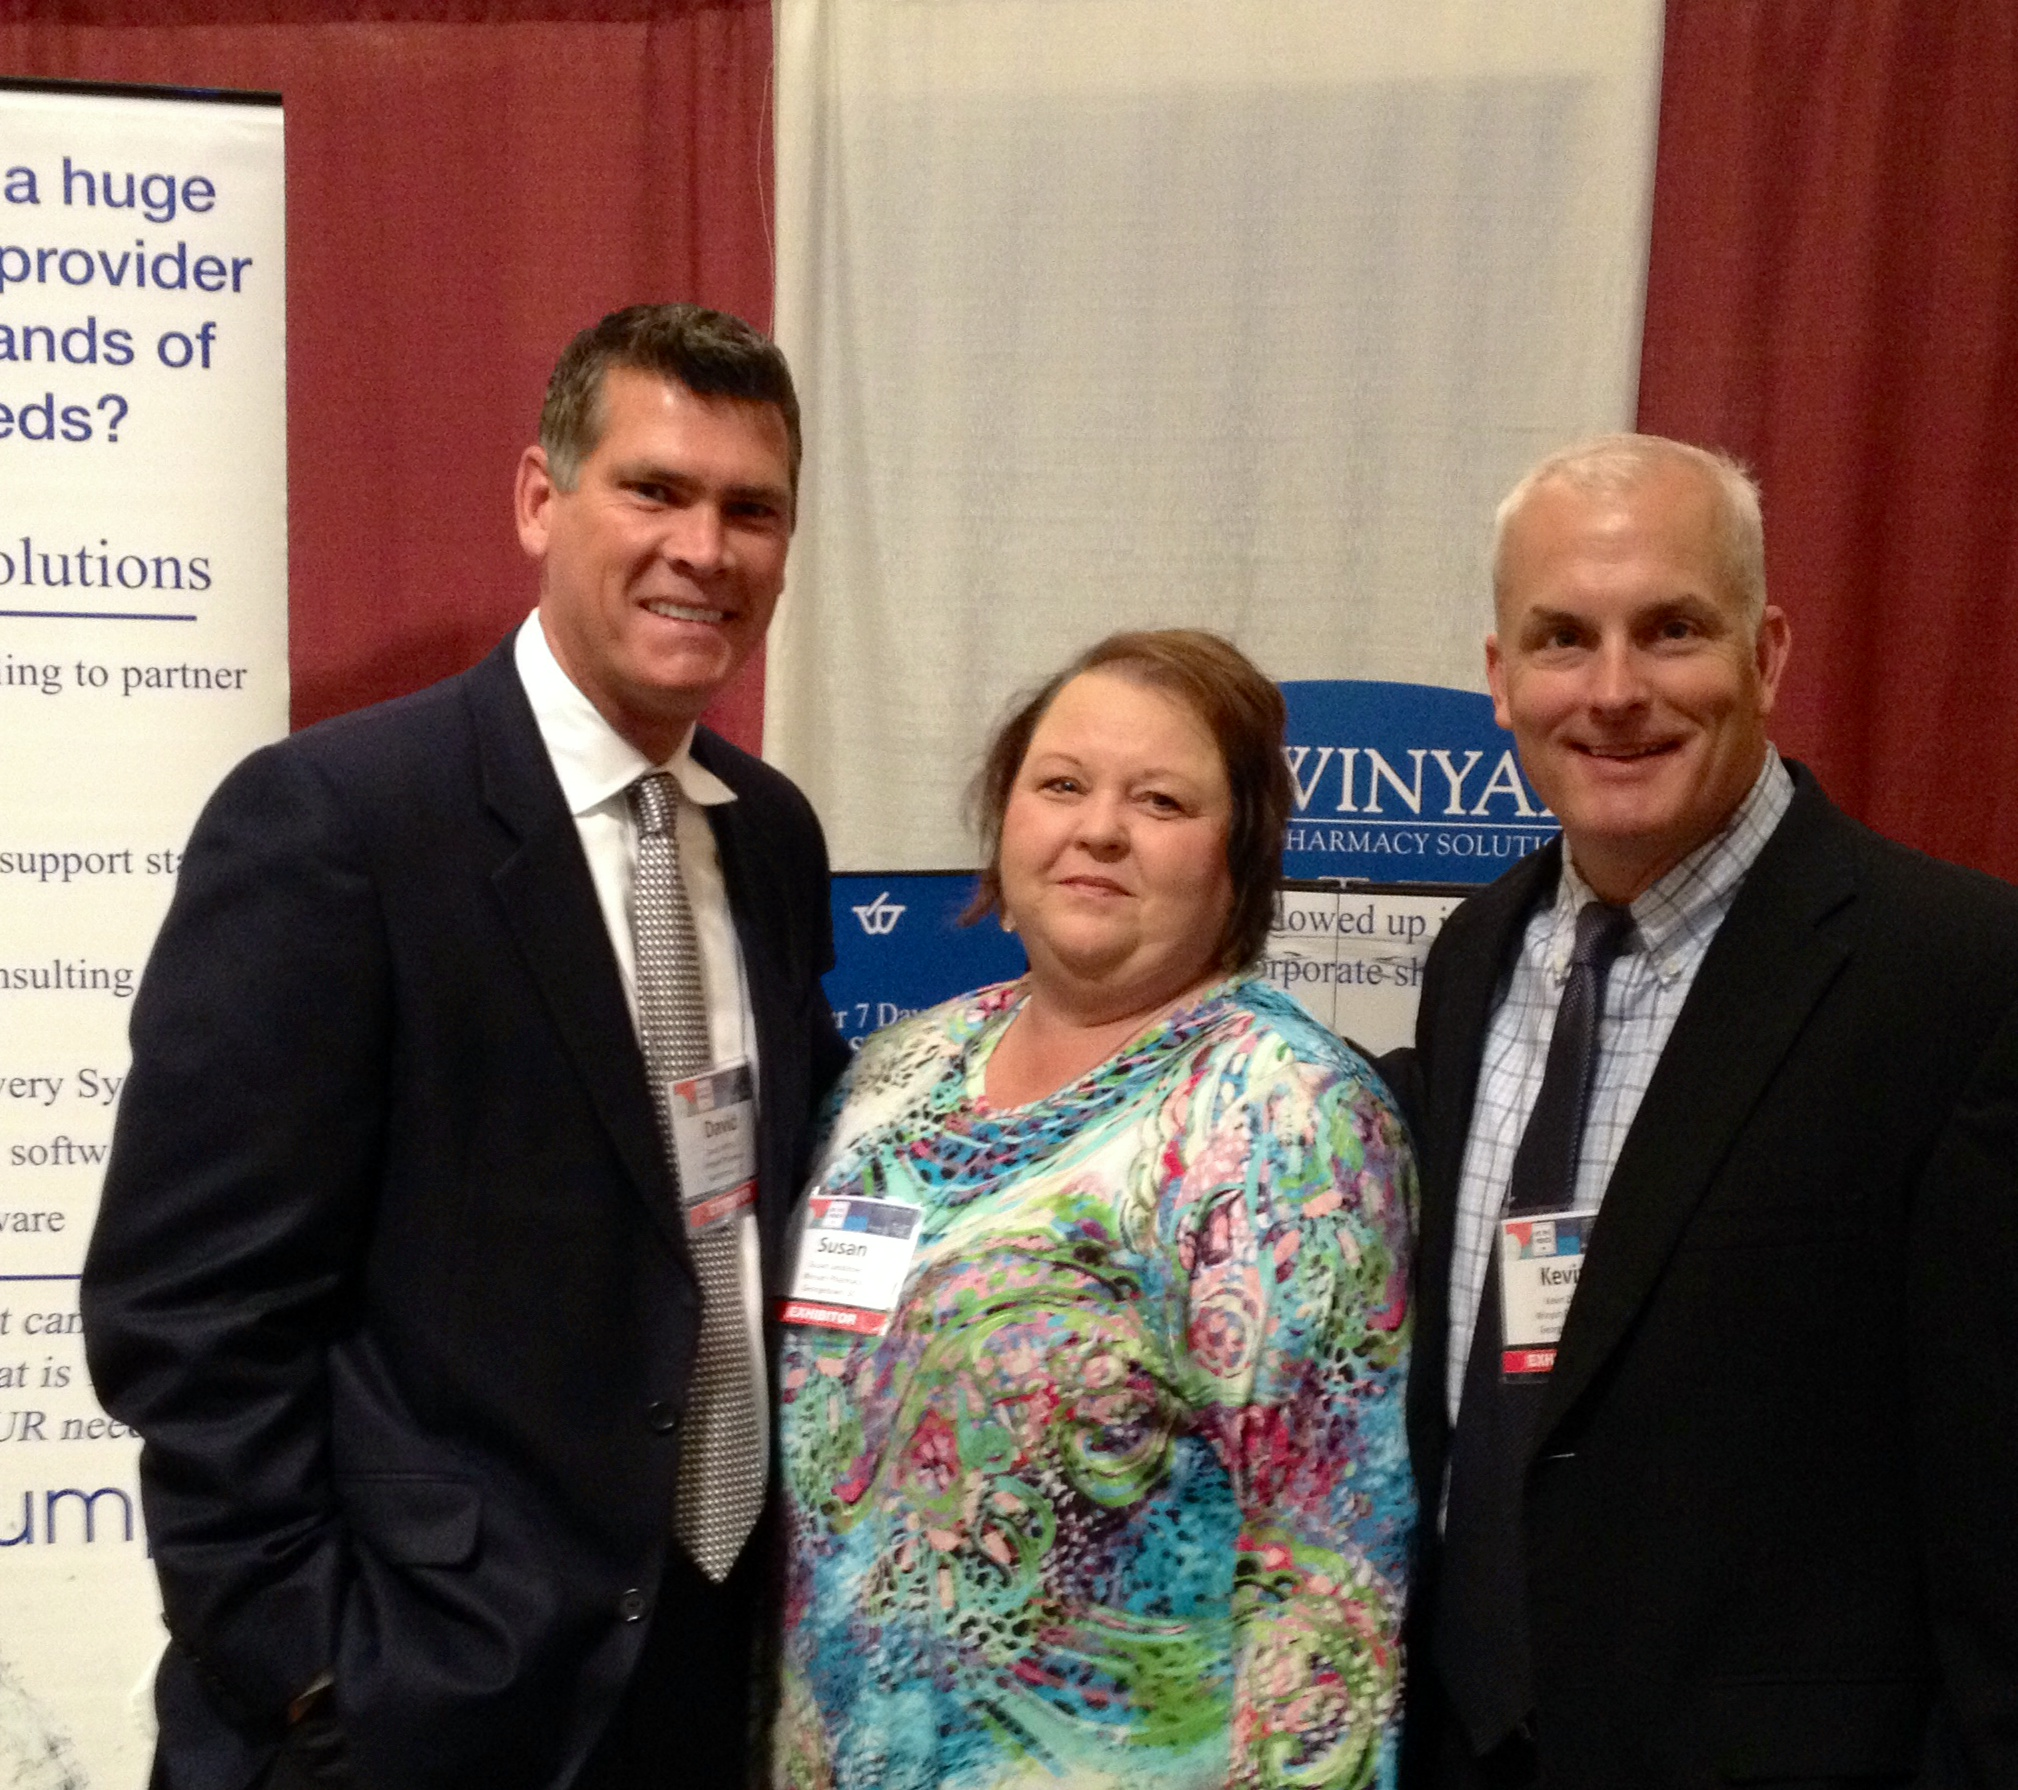 From l to r: David Whitlock, president; Susan Lecklitner, clinical account manager; and Kevin Dixon, sales director.